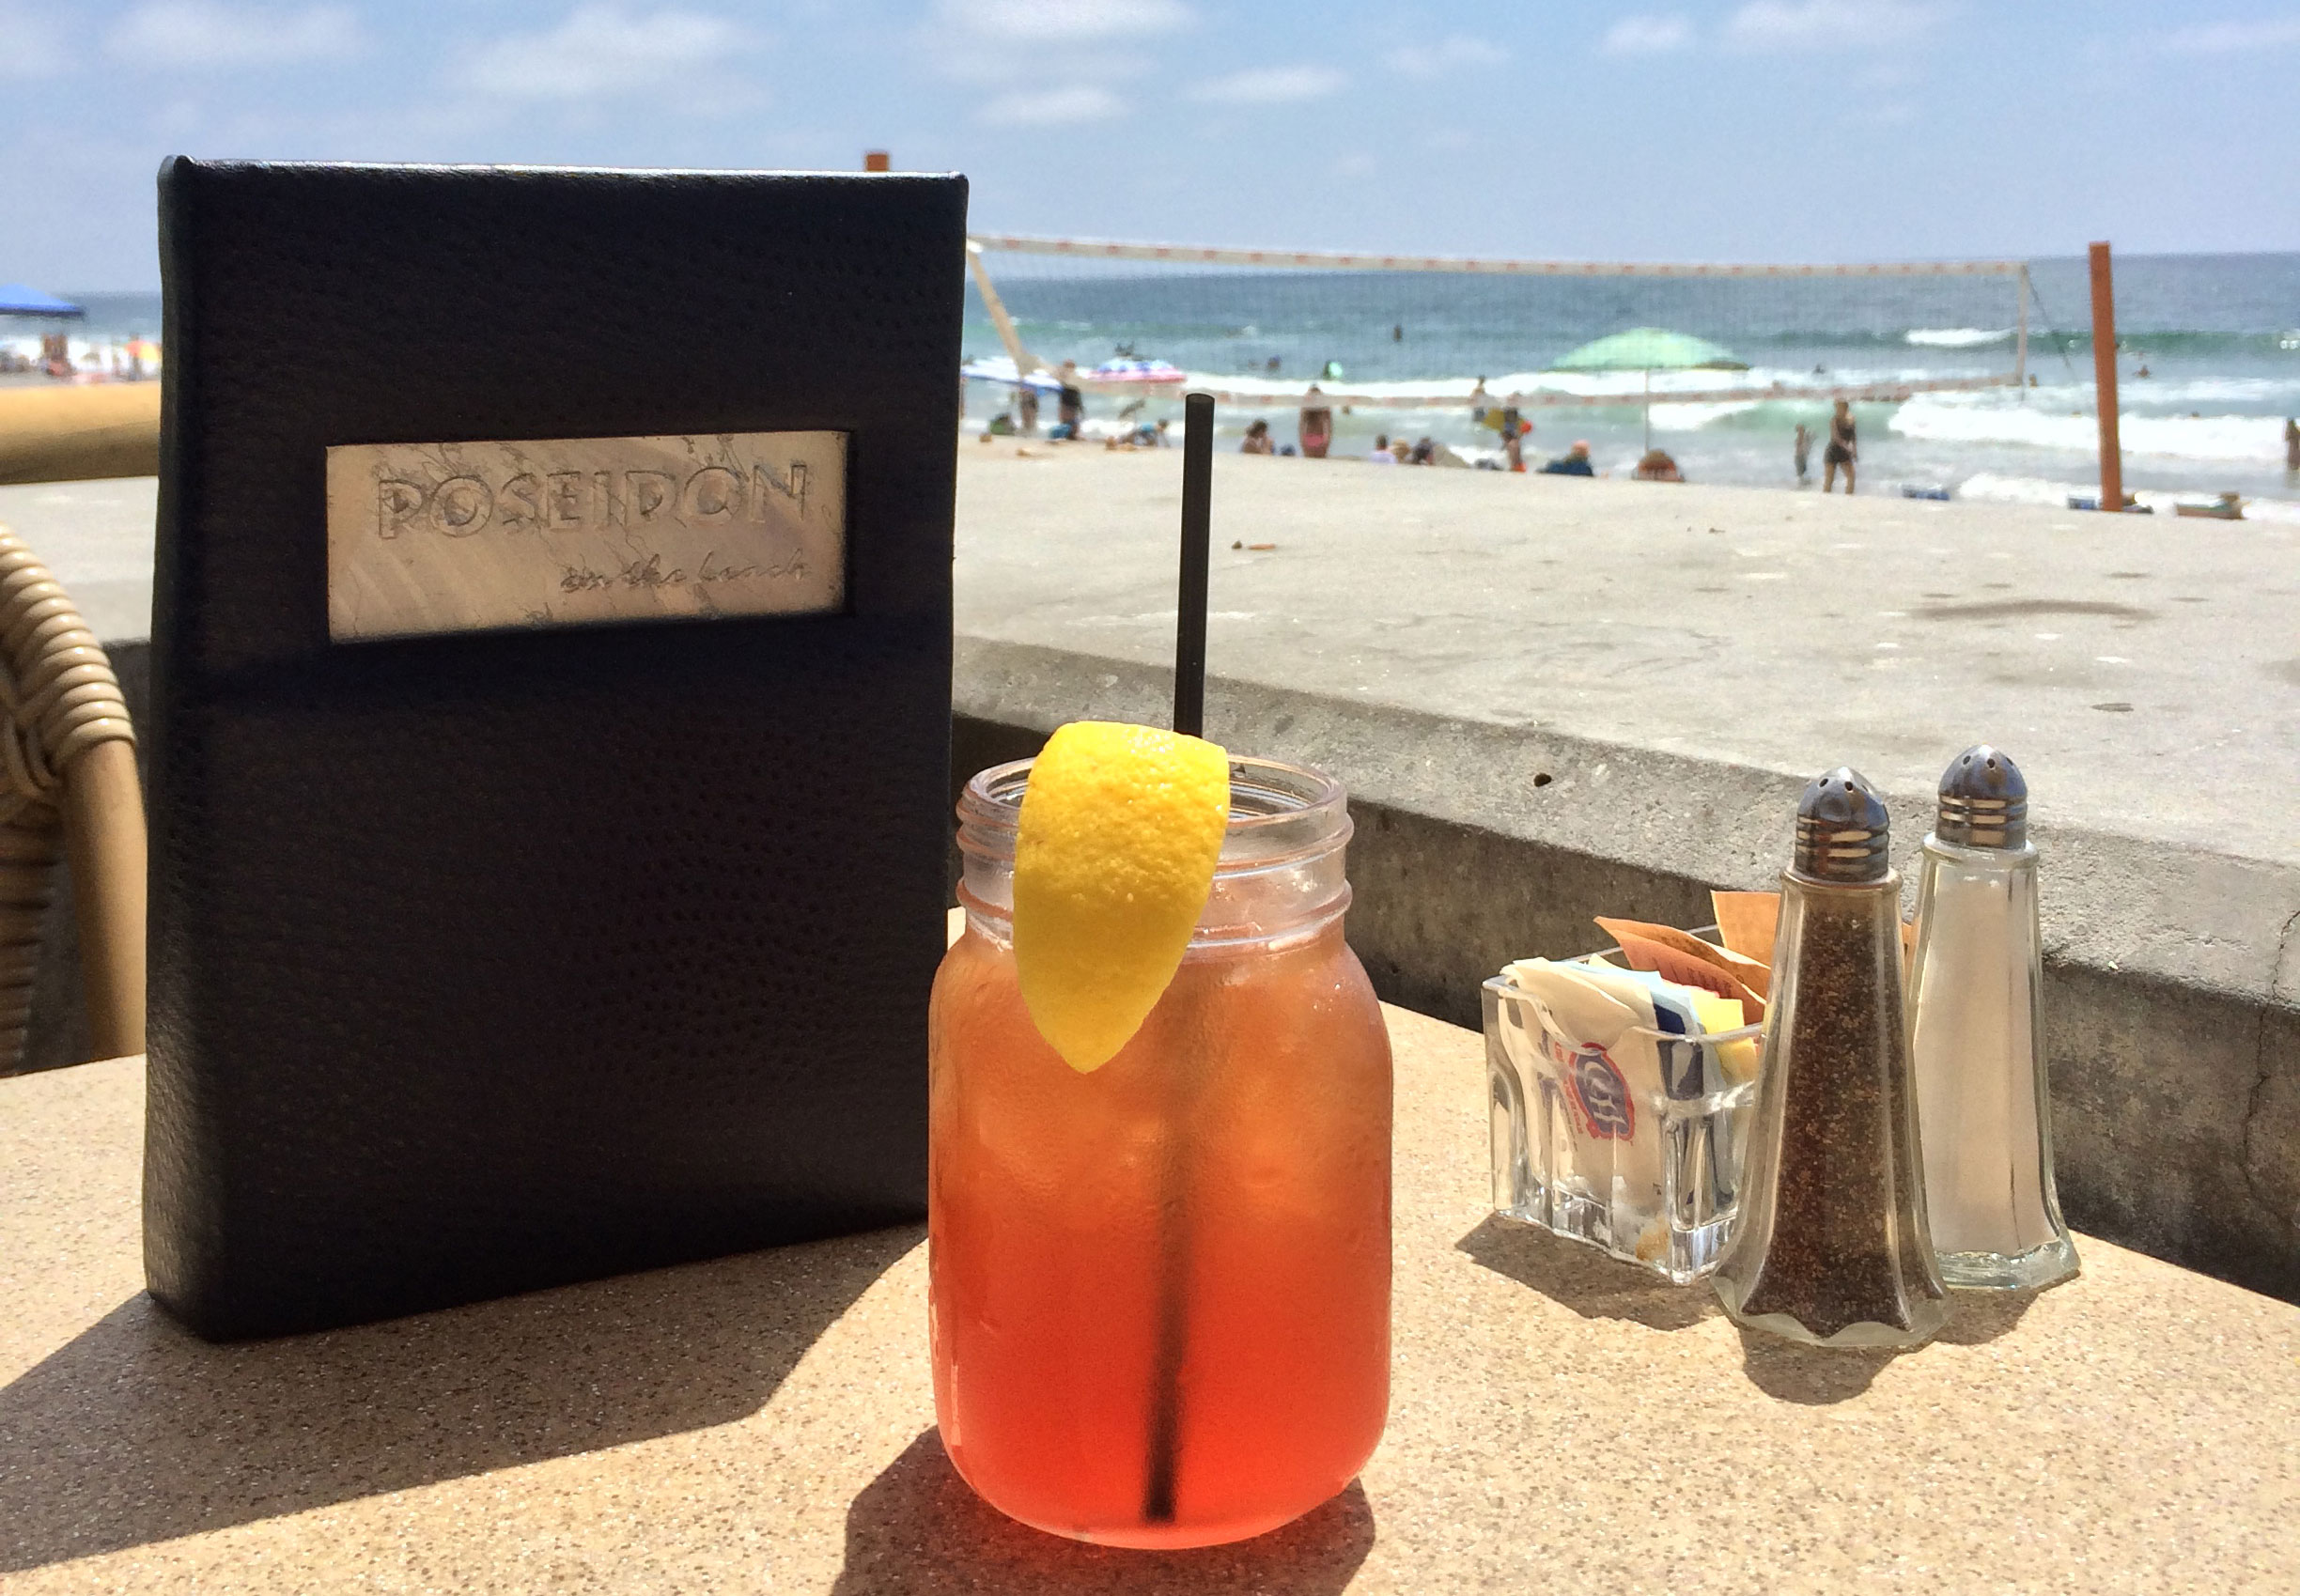 San Diego Chef Deborah Scott dines at San Diego restaurant Poseidon for lunch on the beach